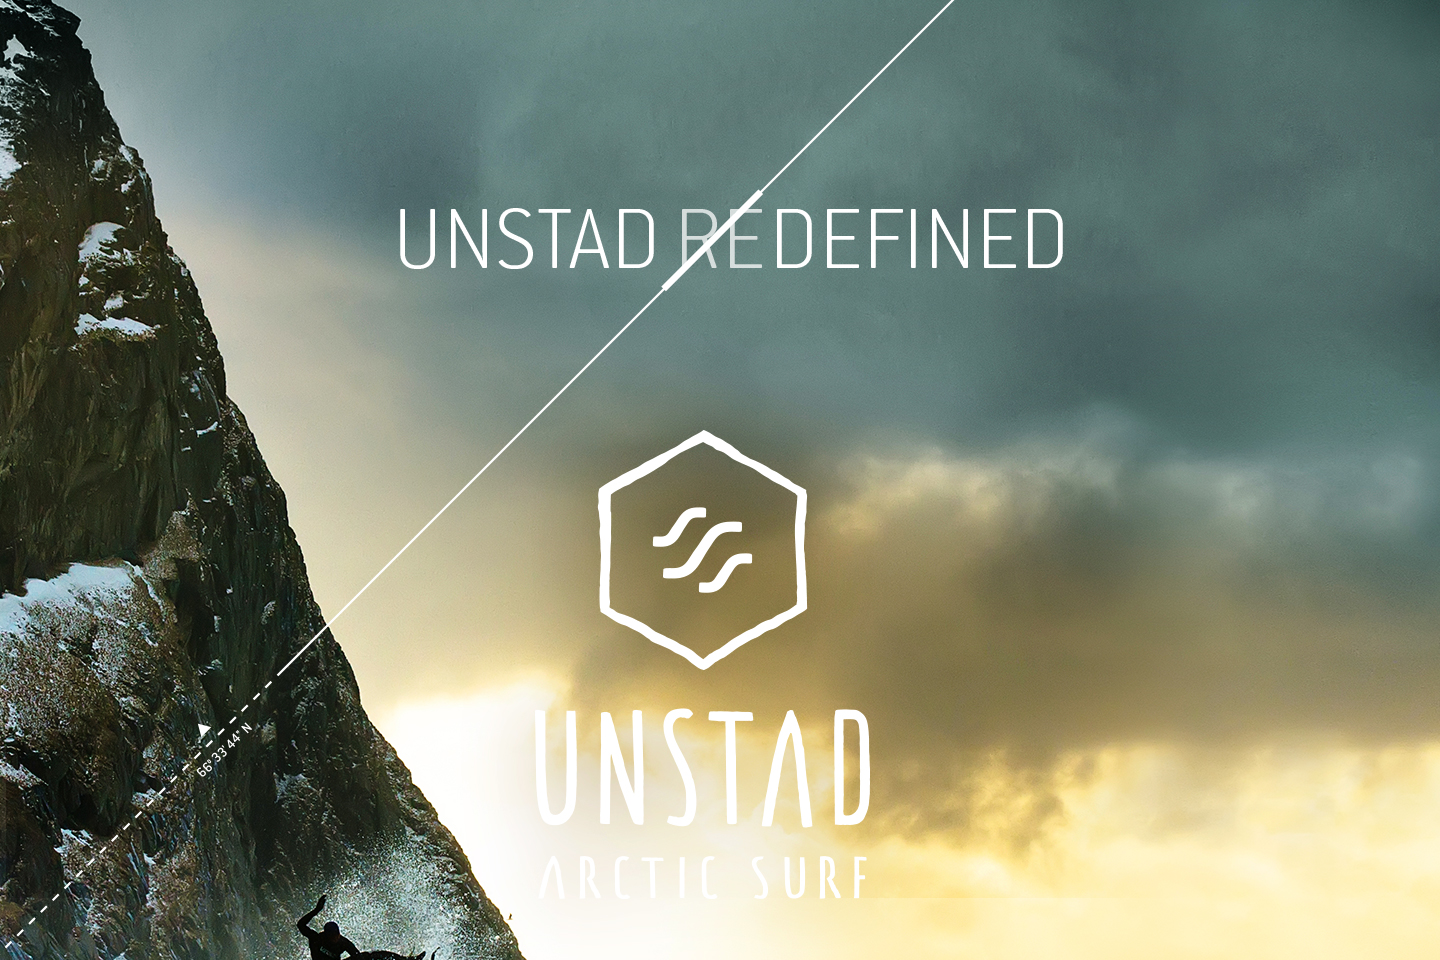 Unstad Arctic Surf logo and surf image